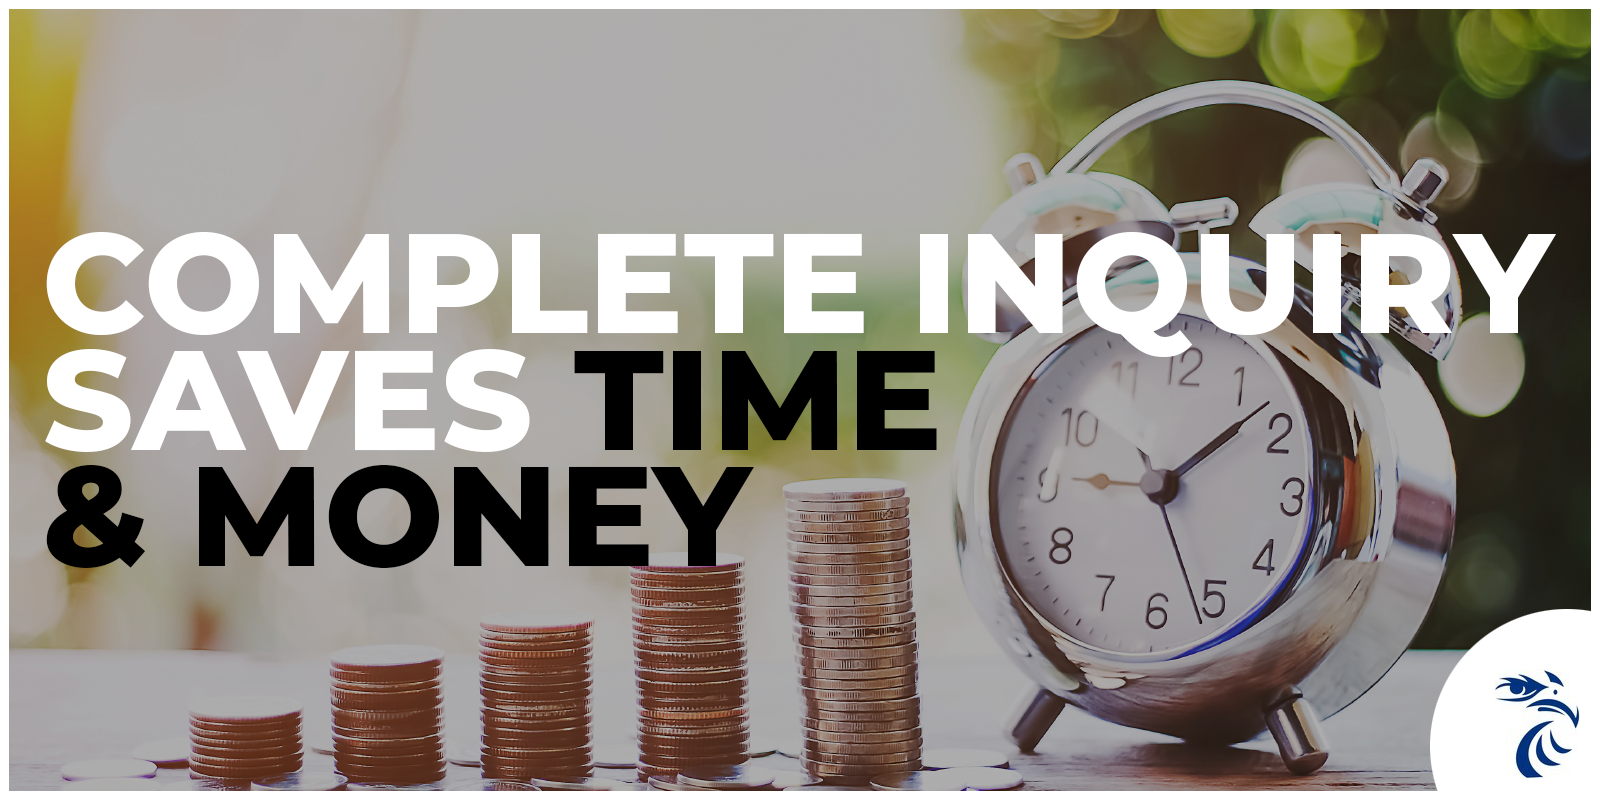 Picture of clock and stacks of change with tagline: Complete inquiry saves time & money